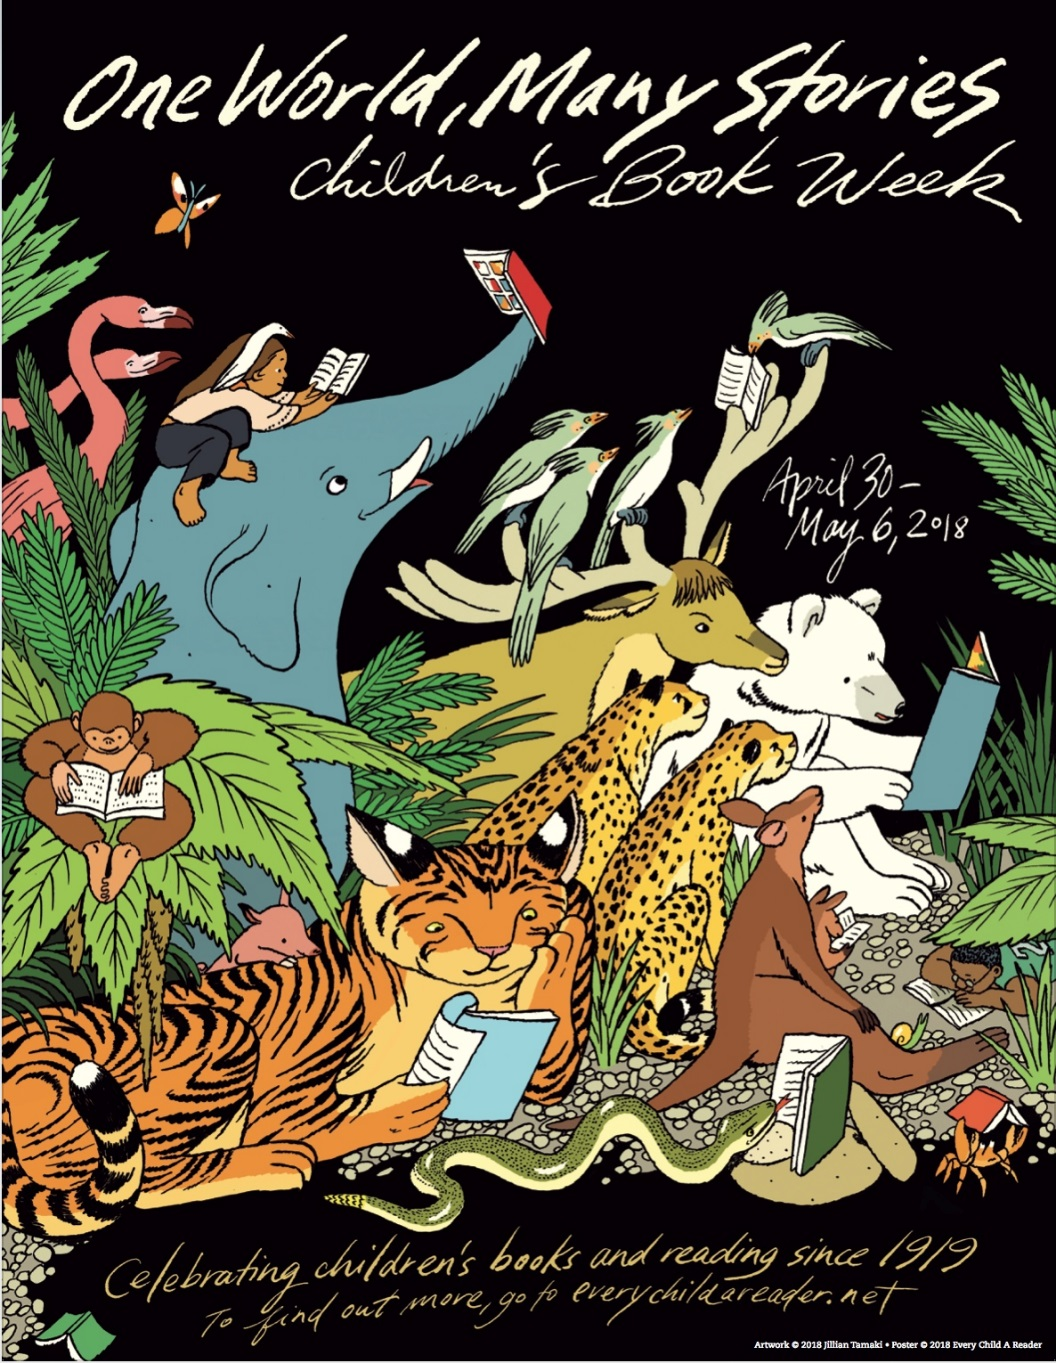 poster for Children's Book Week 2018